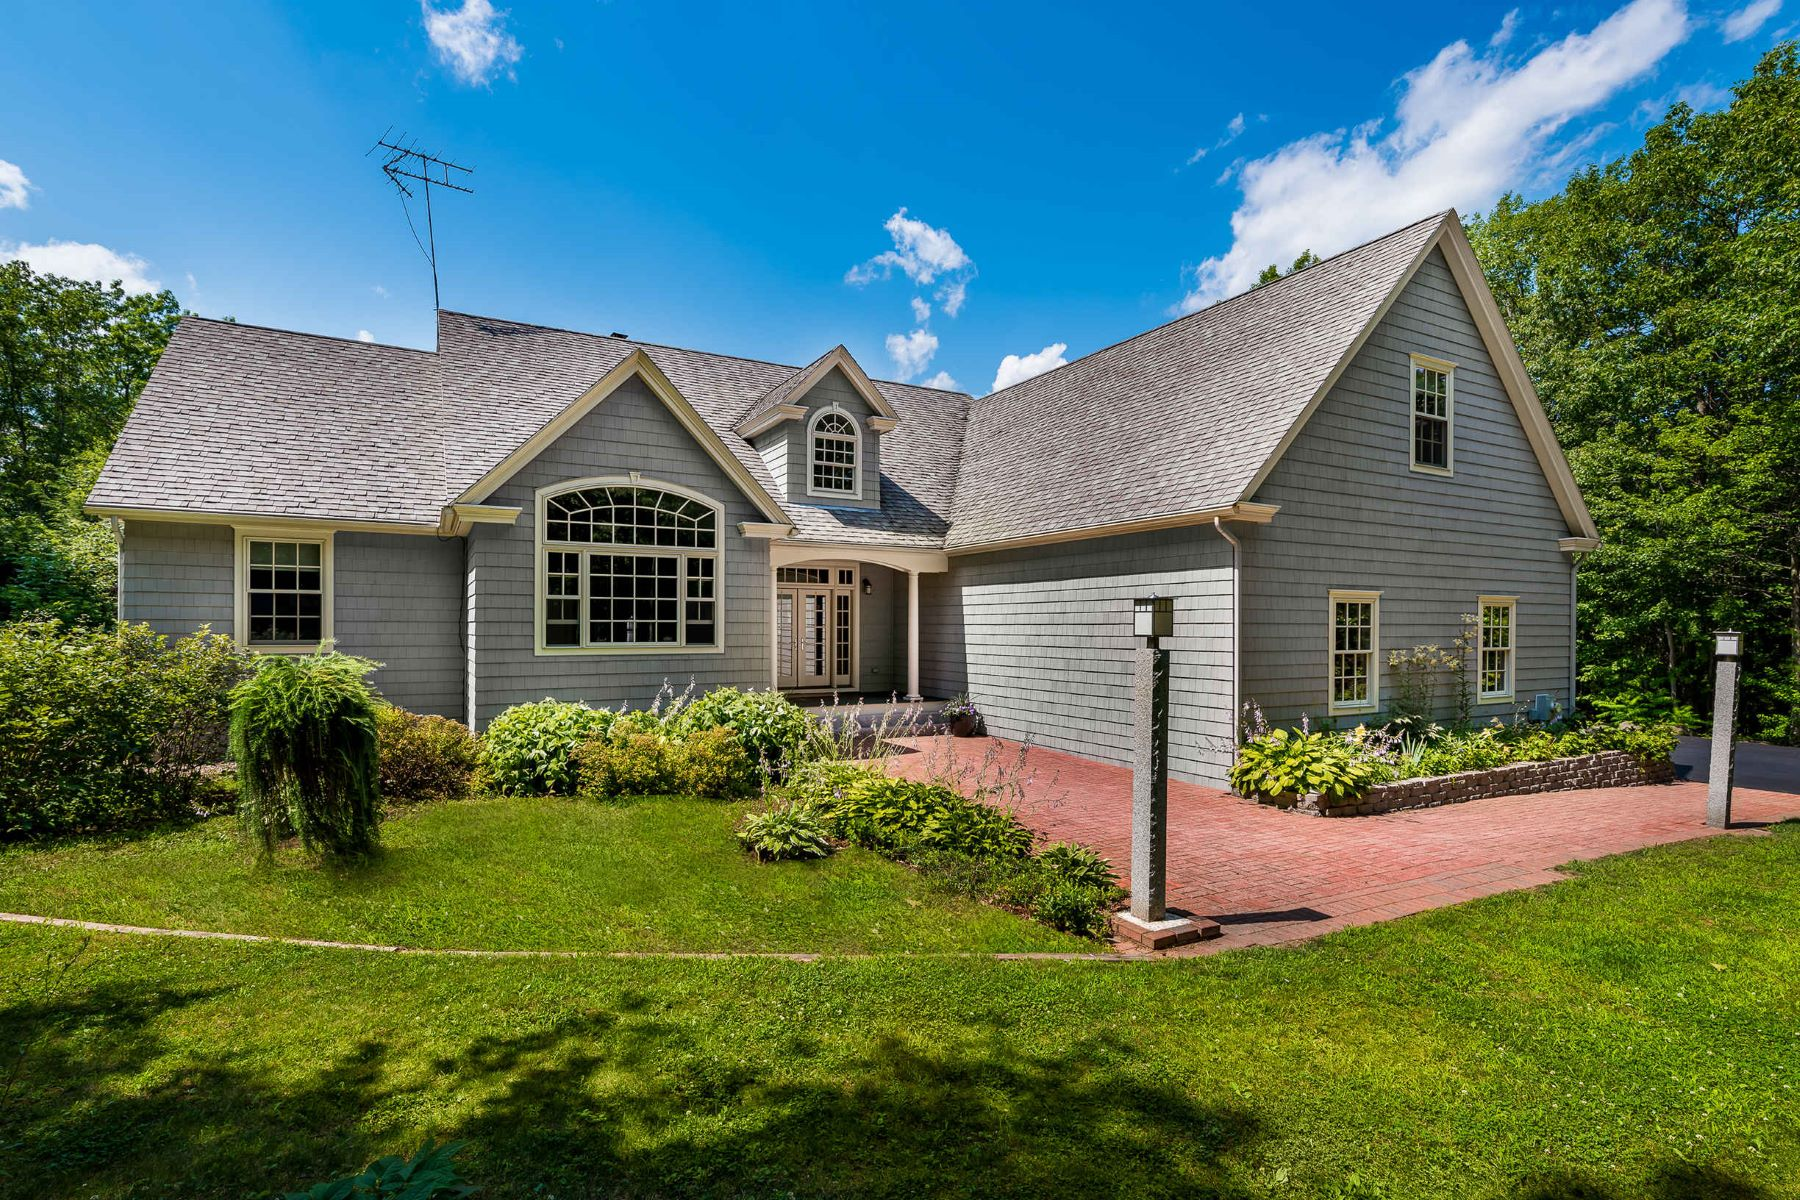 Single Family Homes for Sale at Masterfully Crafted 4 Bedroom Contemporary in Waterboro 79 Star Hill Road, Waterboro, Maine 04087 United States